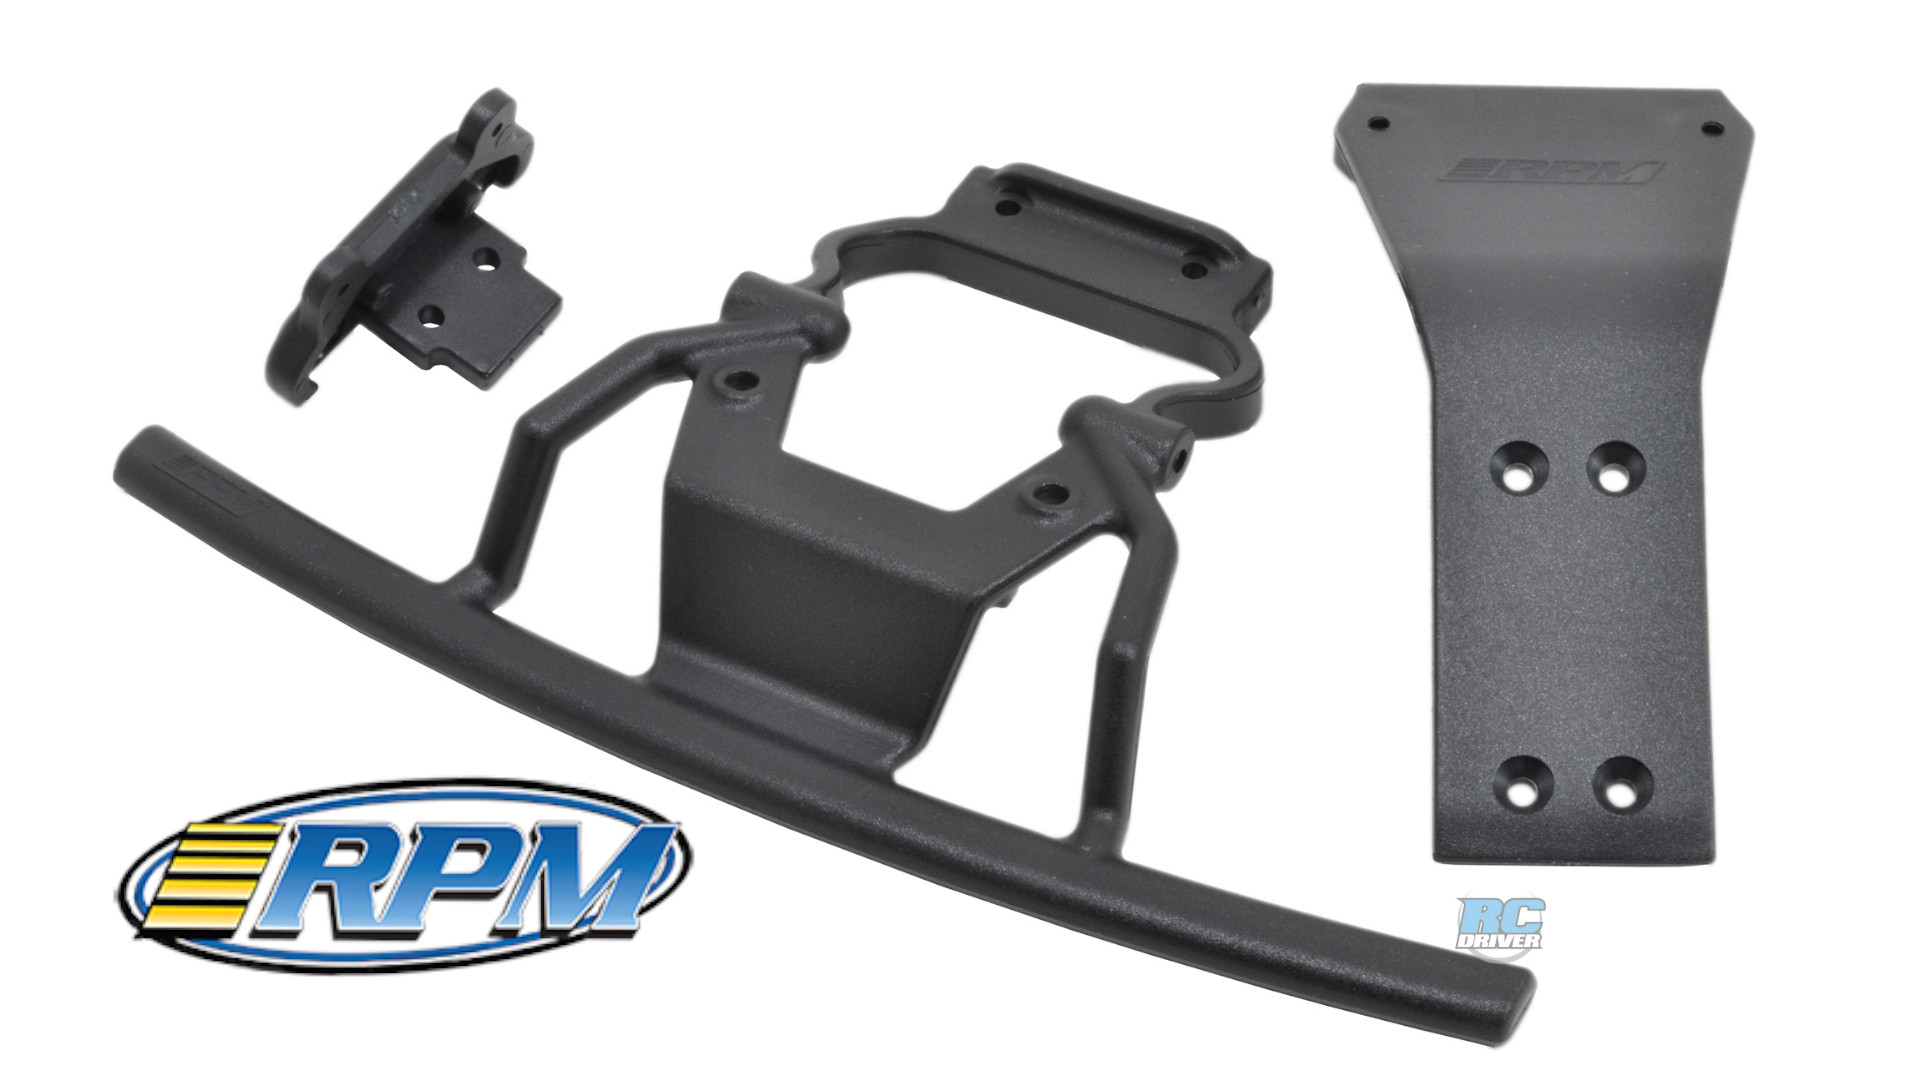 RPM Front bumper & skid plate for the Losi Baja Rey